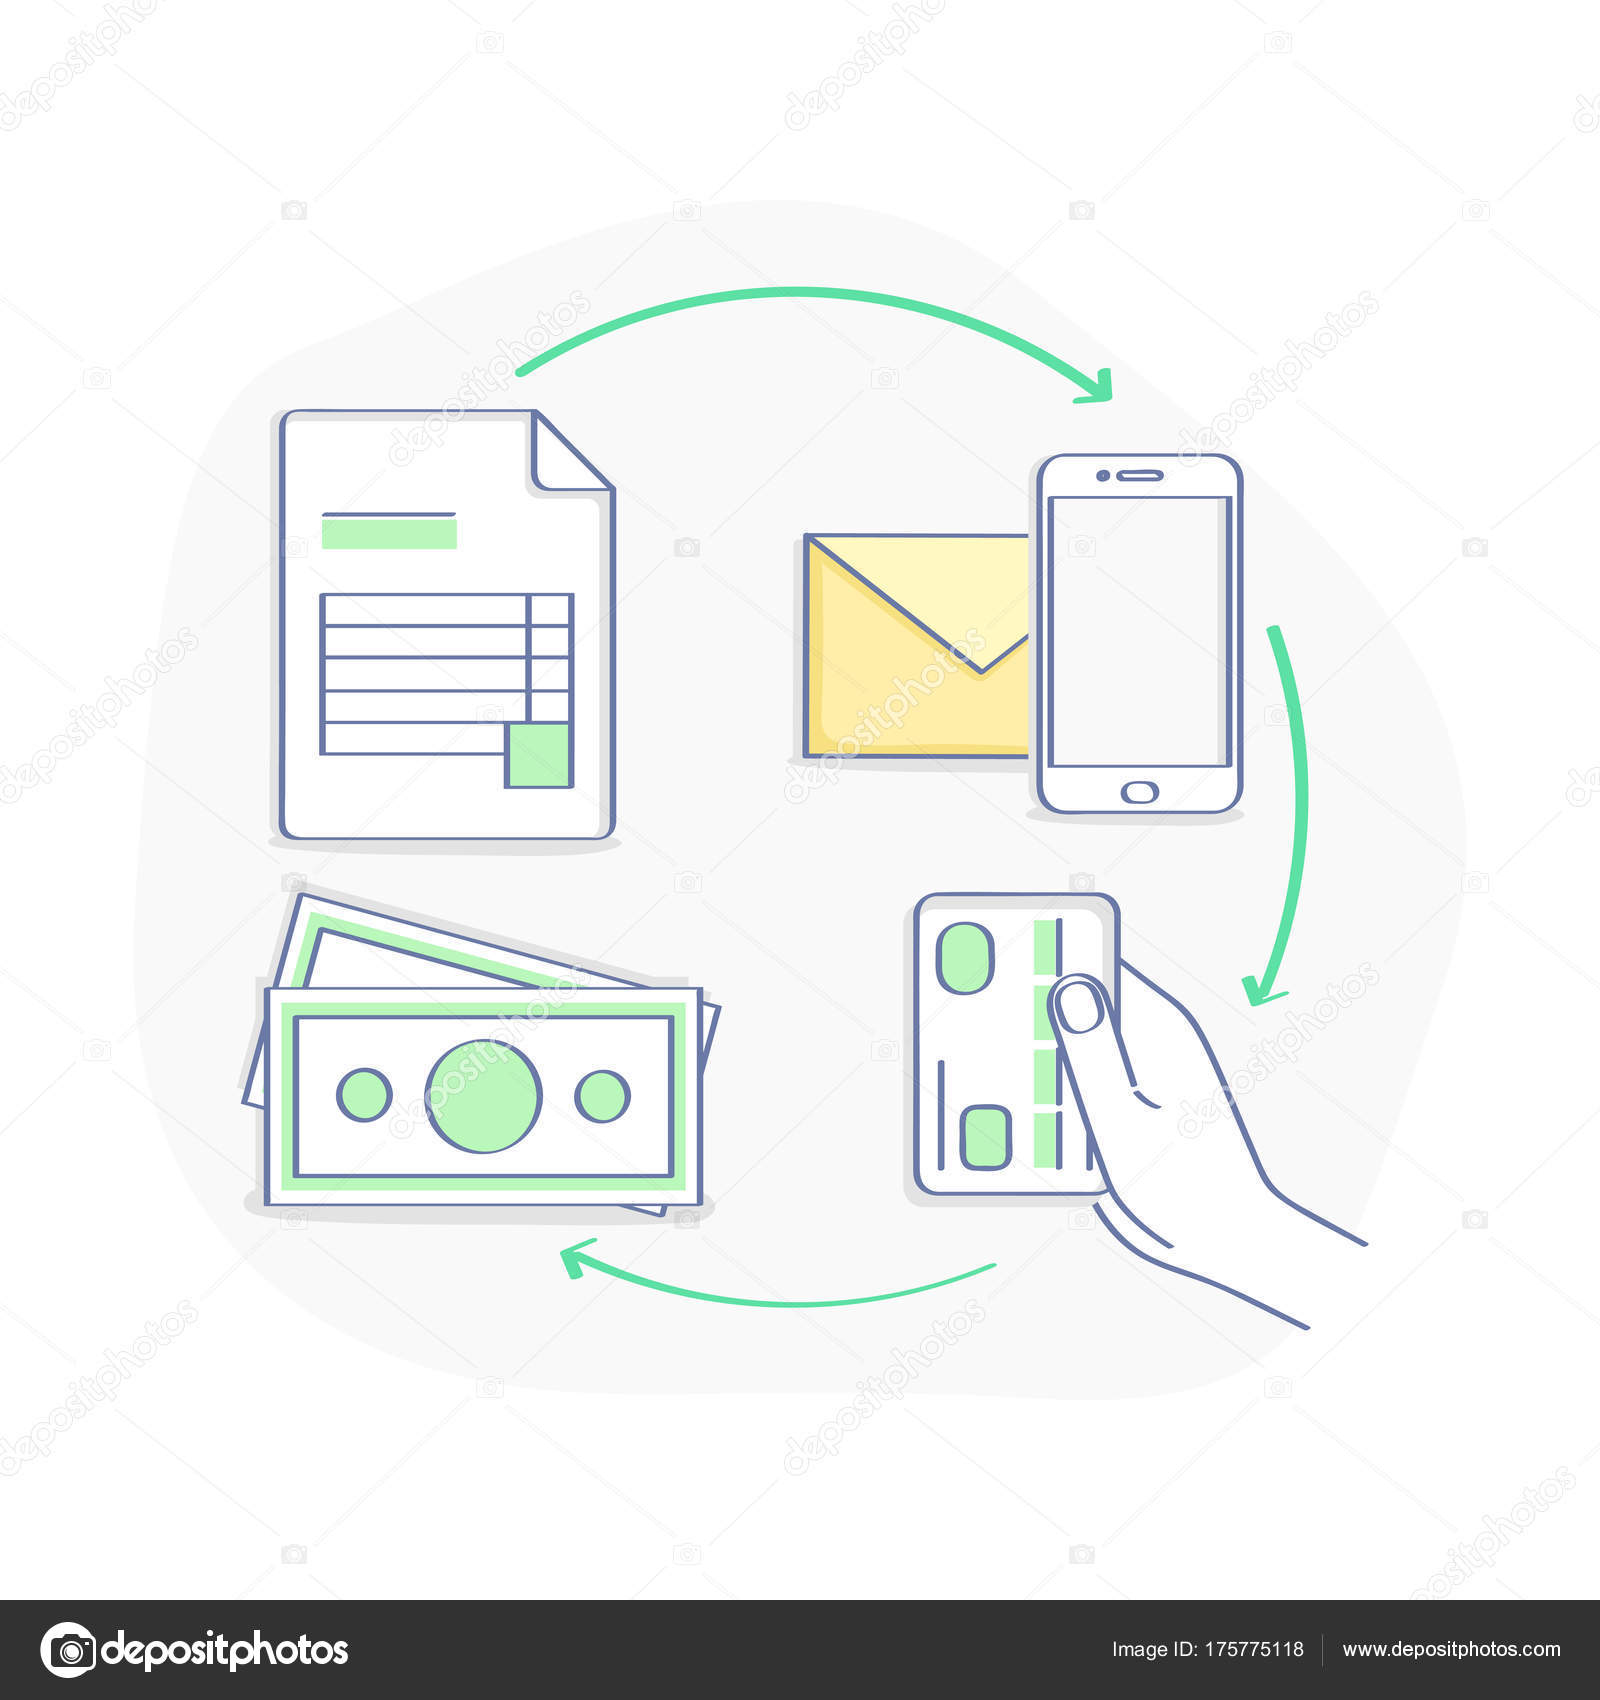 Invoicing Payment Online Illustration Concept Set Online Sale - How to prepare an invoice for payment